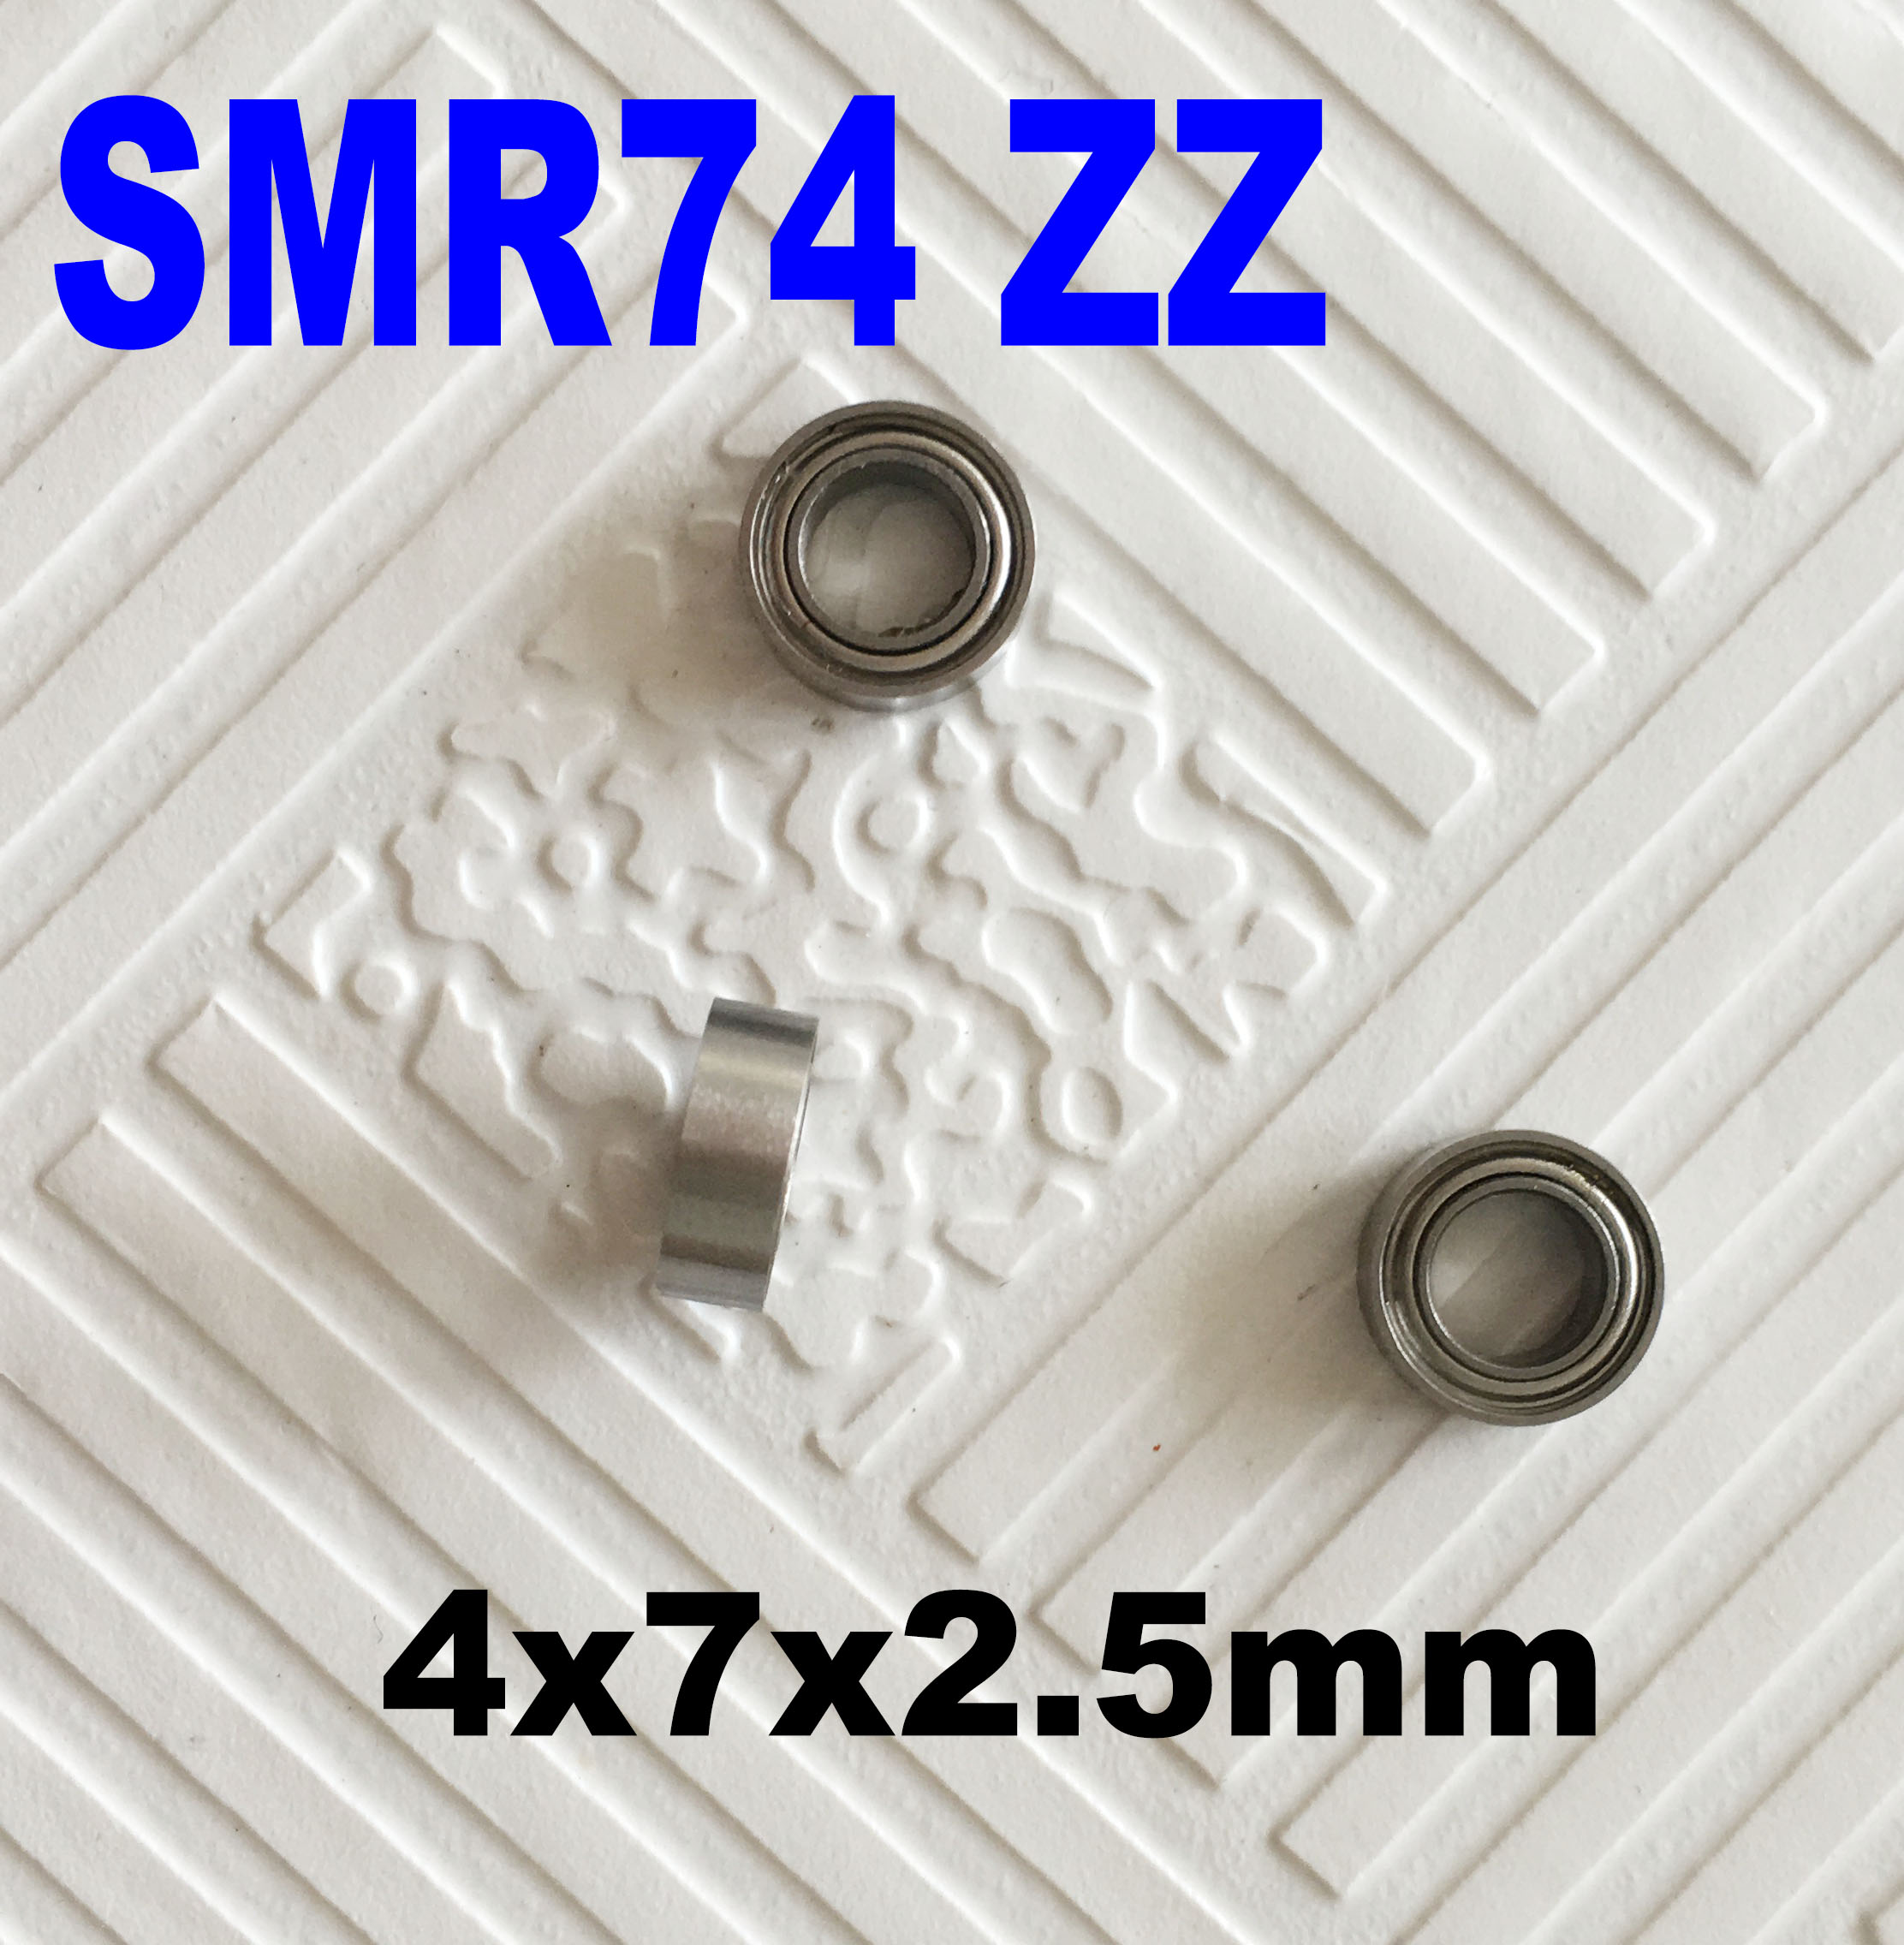 Free shipping 6 PCS SMR74ZZ Bearing 4x7x2.5 Stainless Steel Shielded Miniature Ball Bearings DDL-740ZZ S674ZZ B674ZZ WA674ZZ 11 11 free shippinng 6 x stainless steel 0 63mm od 22ga glue liquid dispenser needles tips